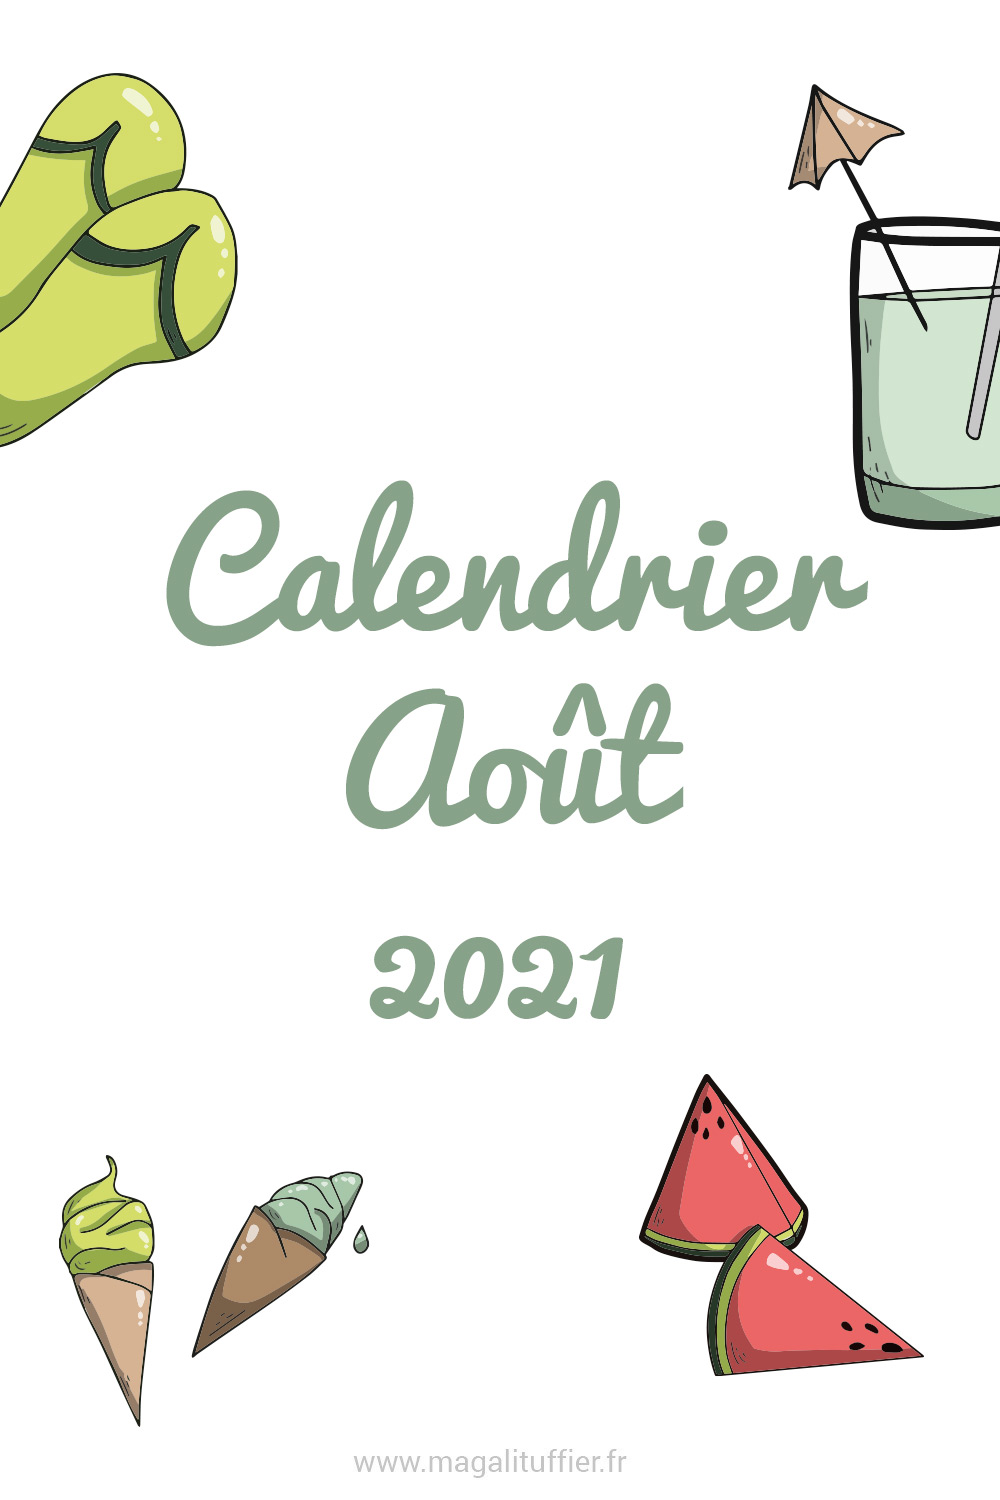 Calendrier Aout 2021